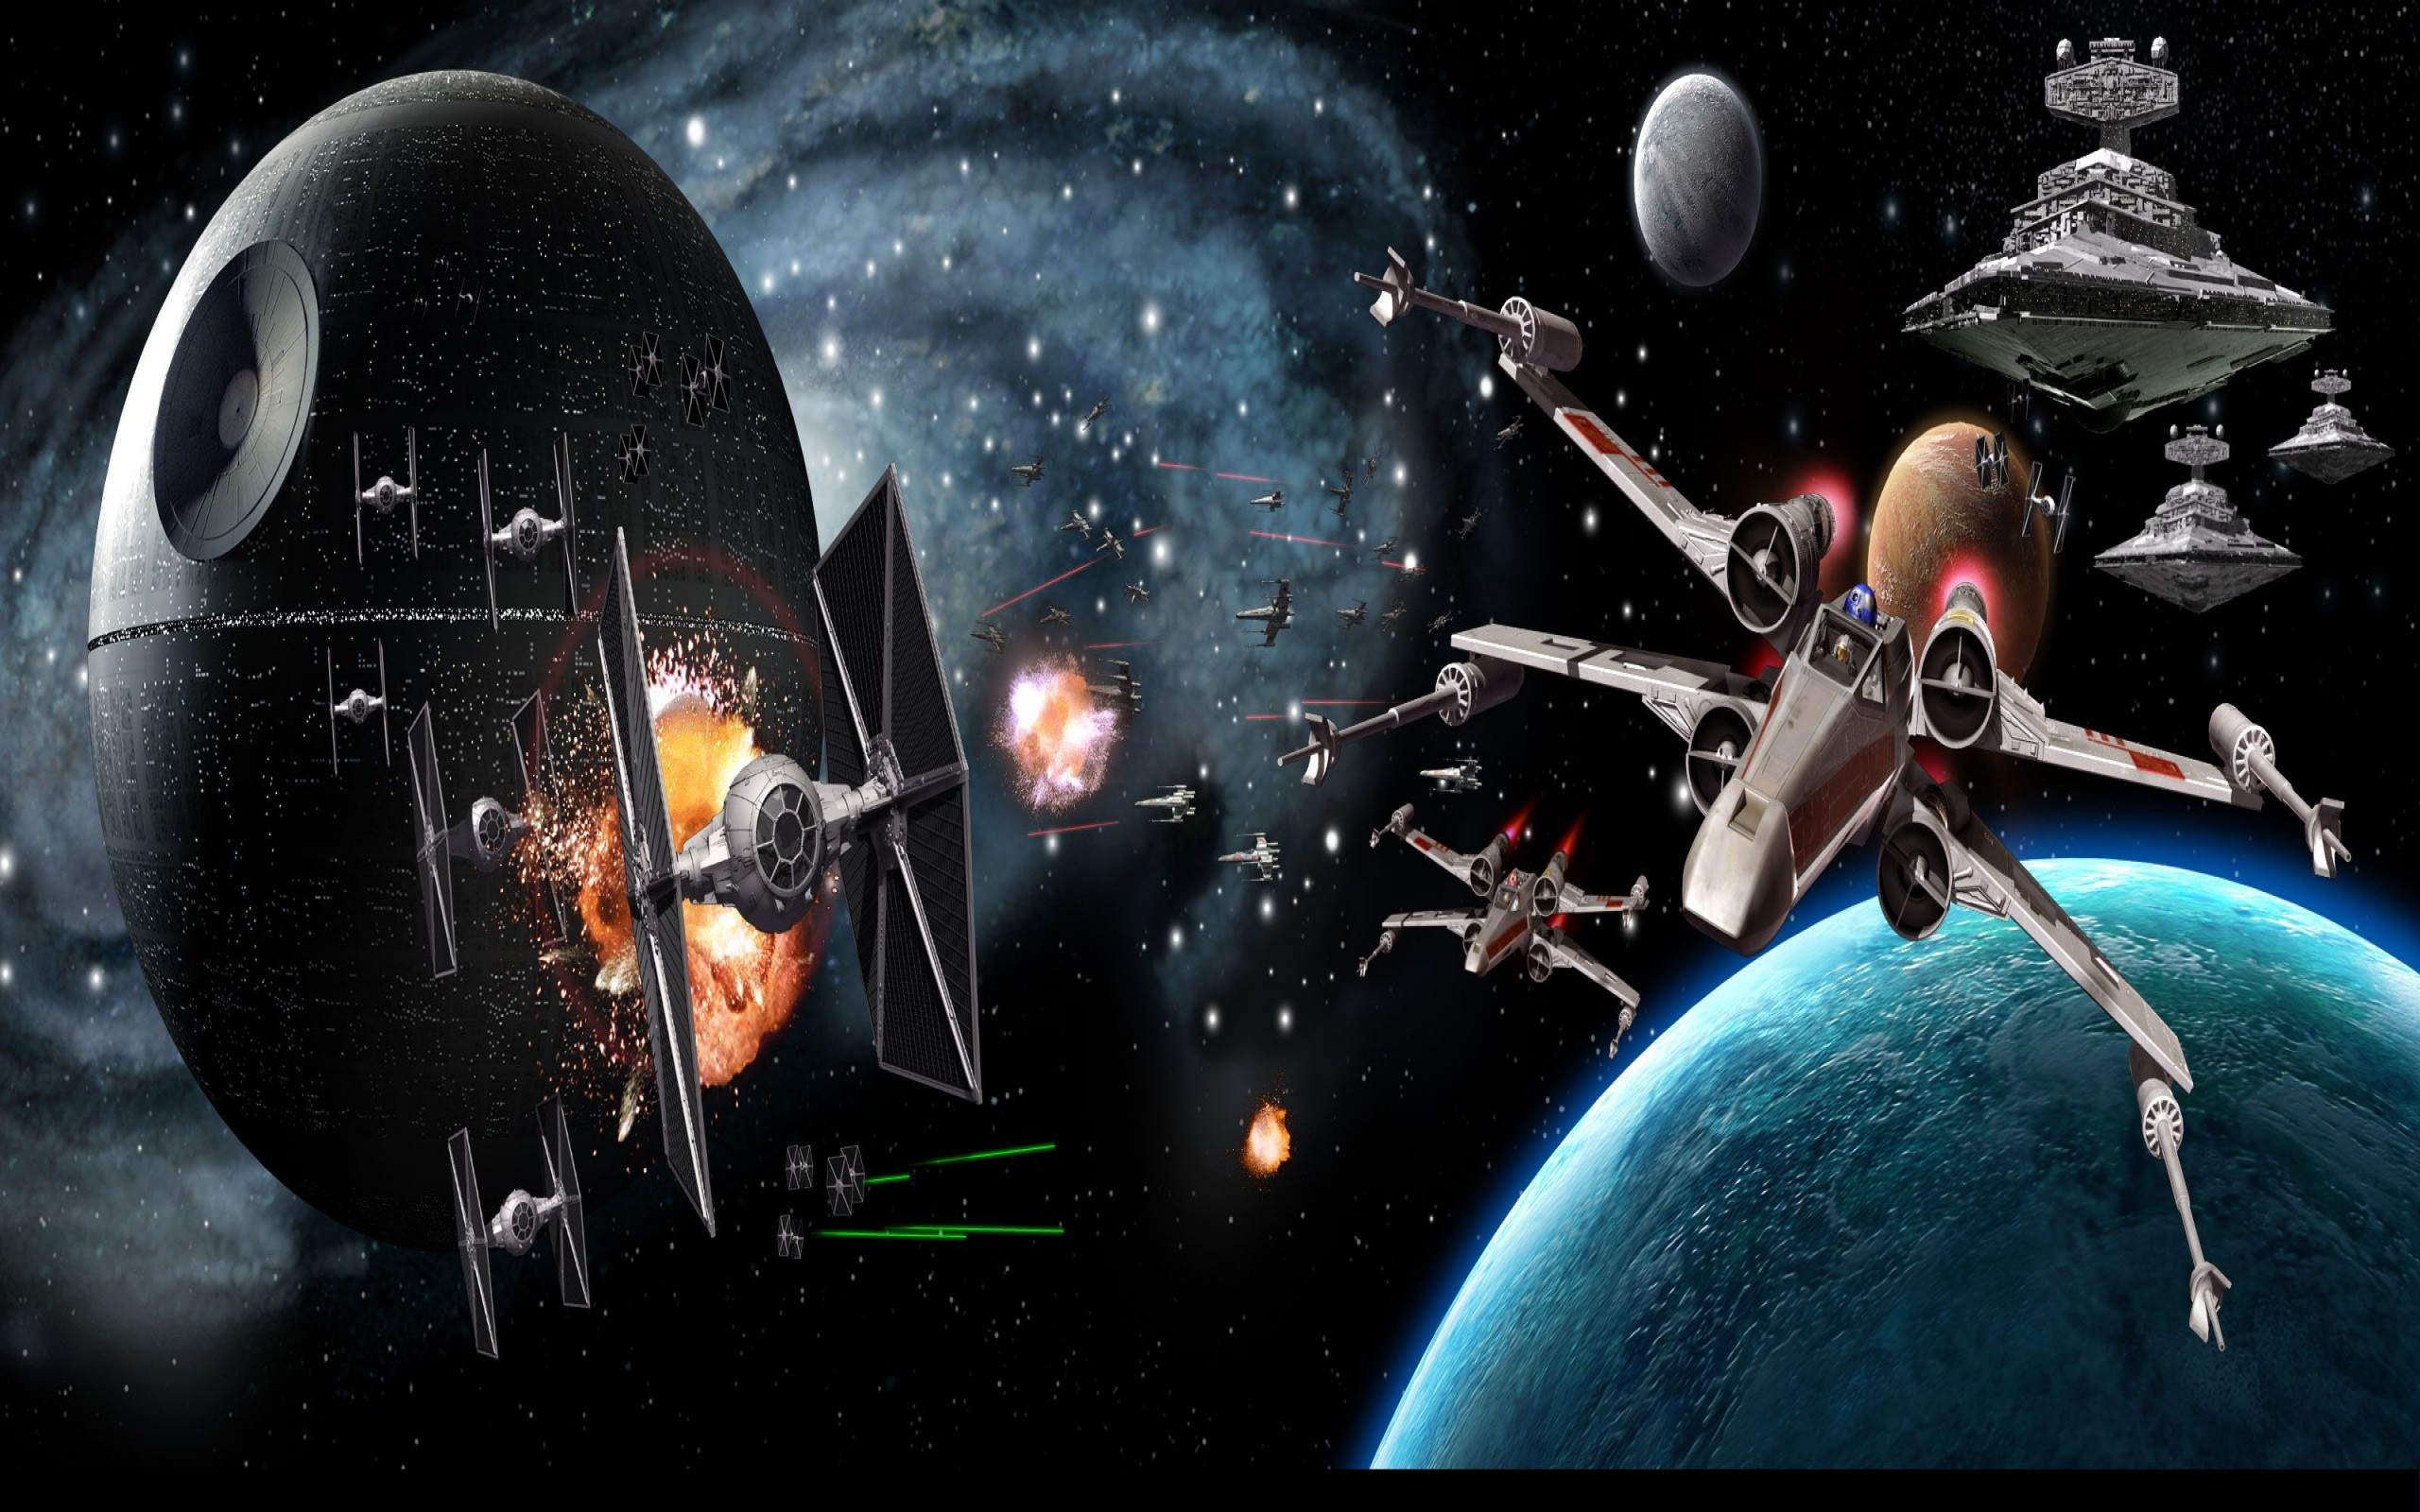 Dual Monitor Star Wars Wallpapers with High Definition Wallpaper  px 1.74 MB Movie Anime 3840×1080